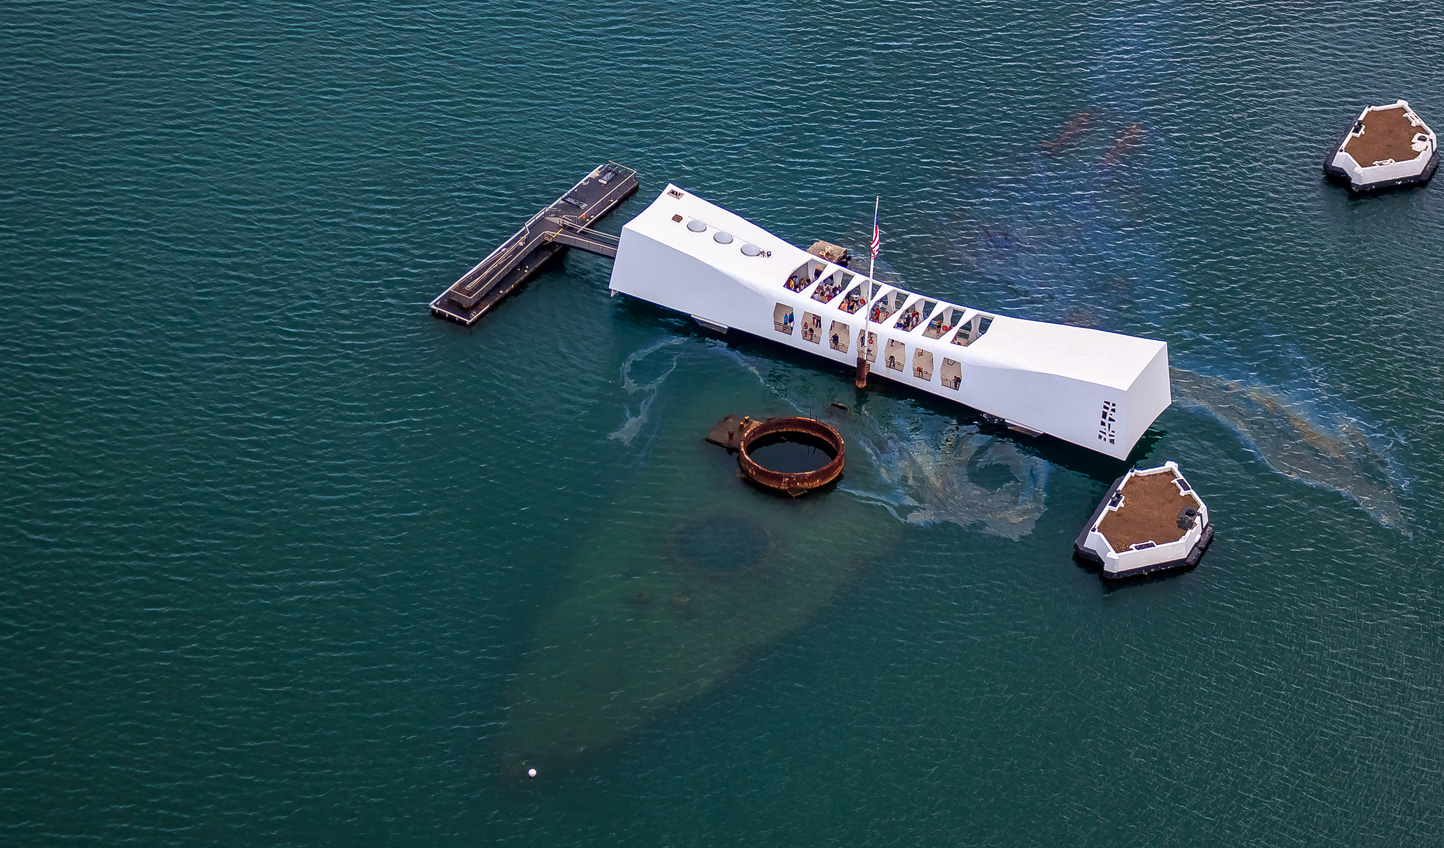 Step back through the history of Pearl Harbor on Oahu